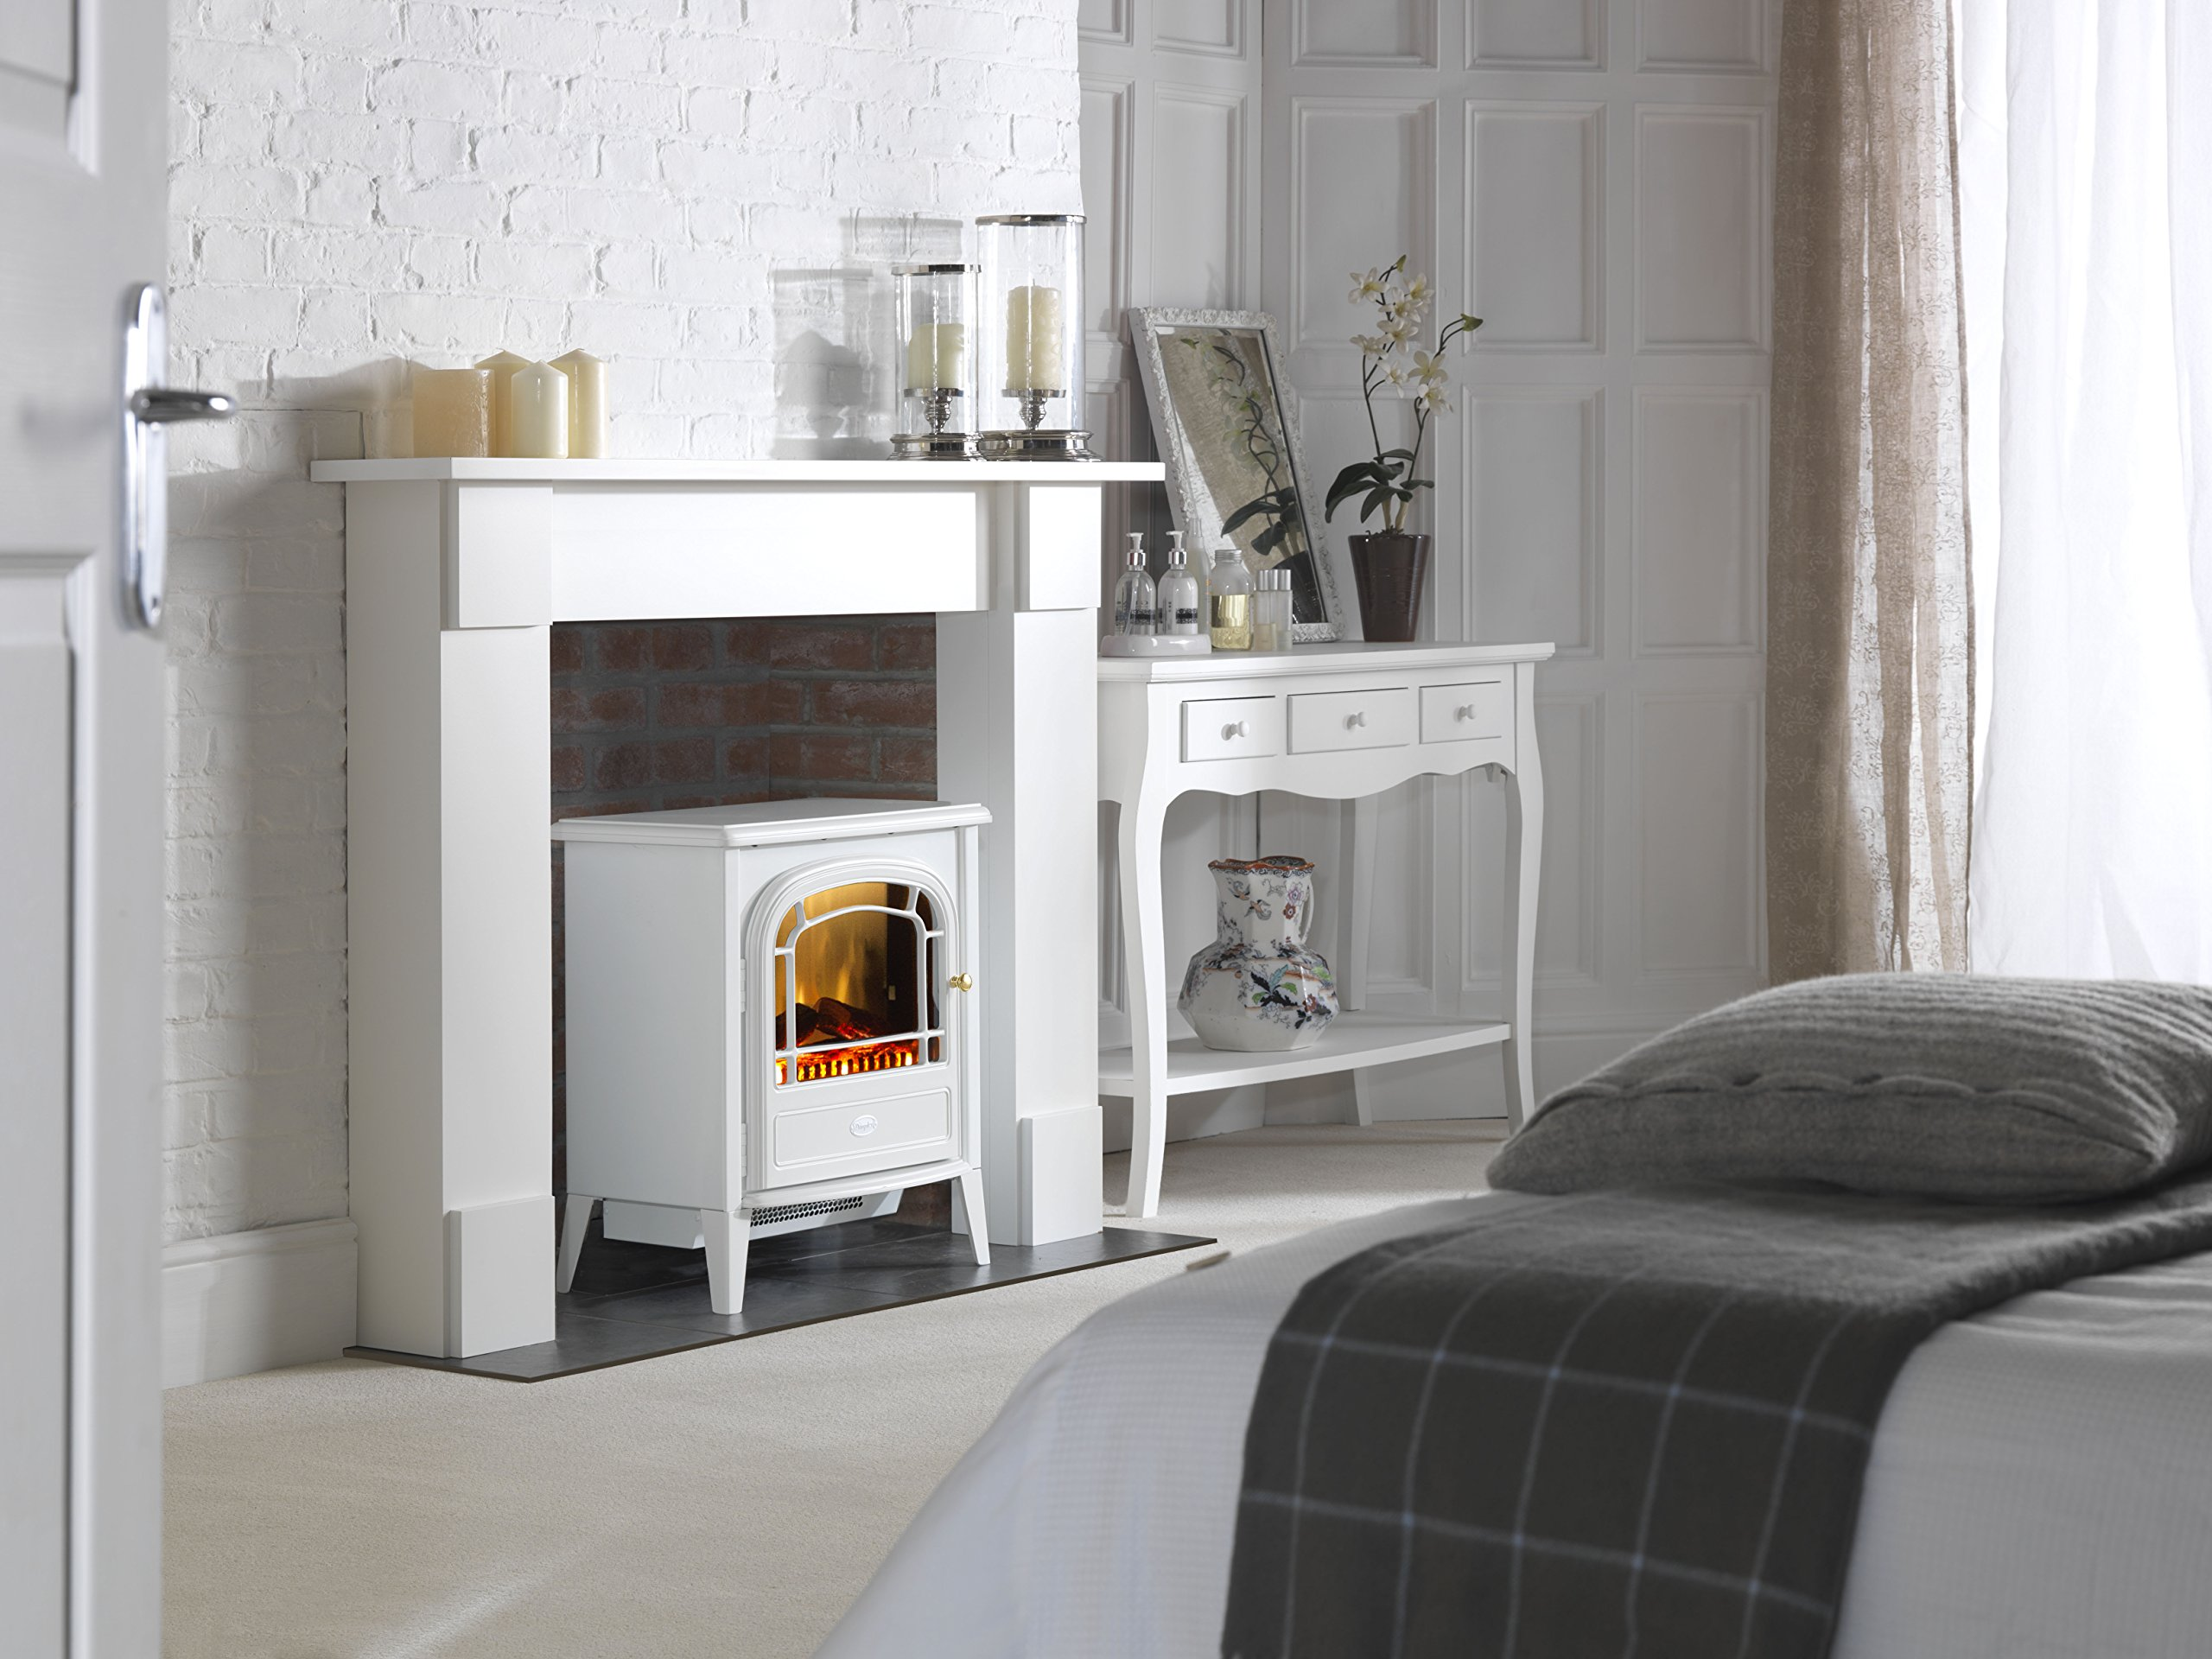 817XFPDHA%2BL - Dimplex CVL20E Courchevel Electric Stove with Optiflame Effect, 2 kW, 230 W, White